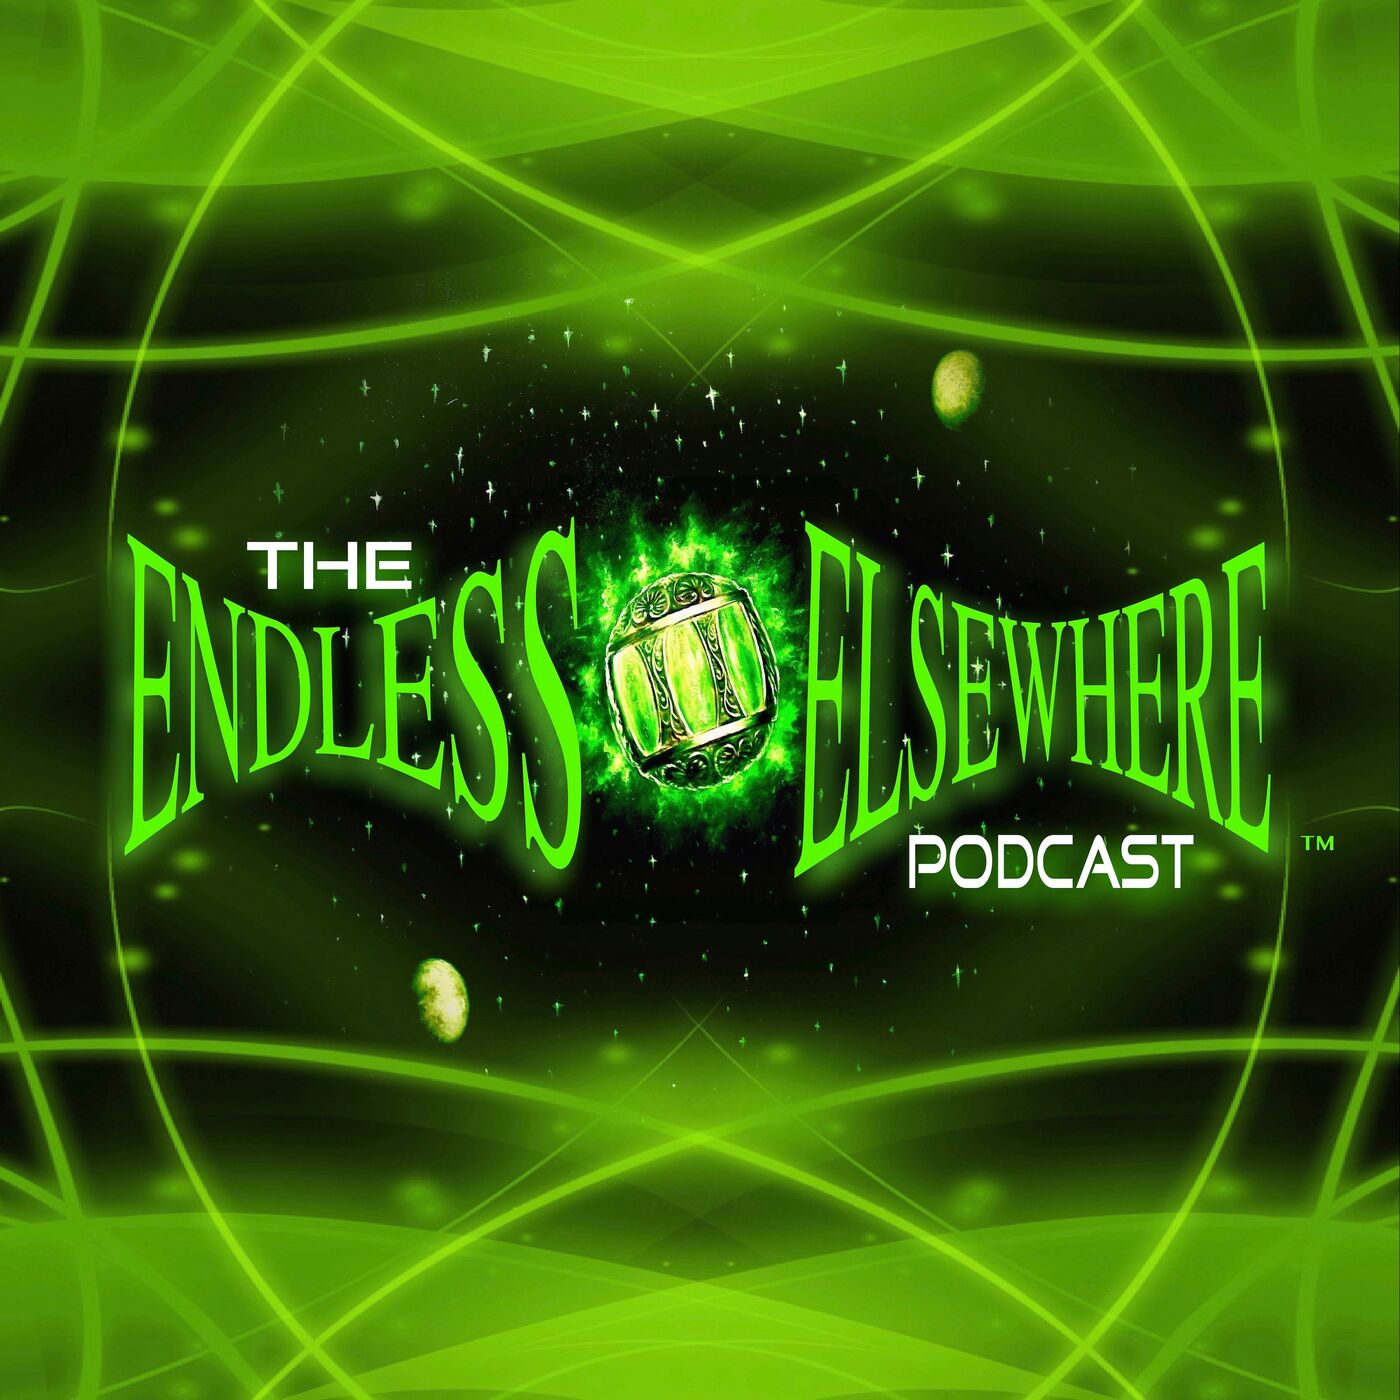 Introducing: The Endless Elsewhere Podcast